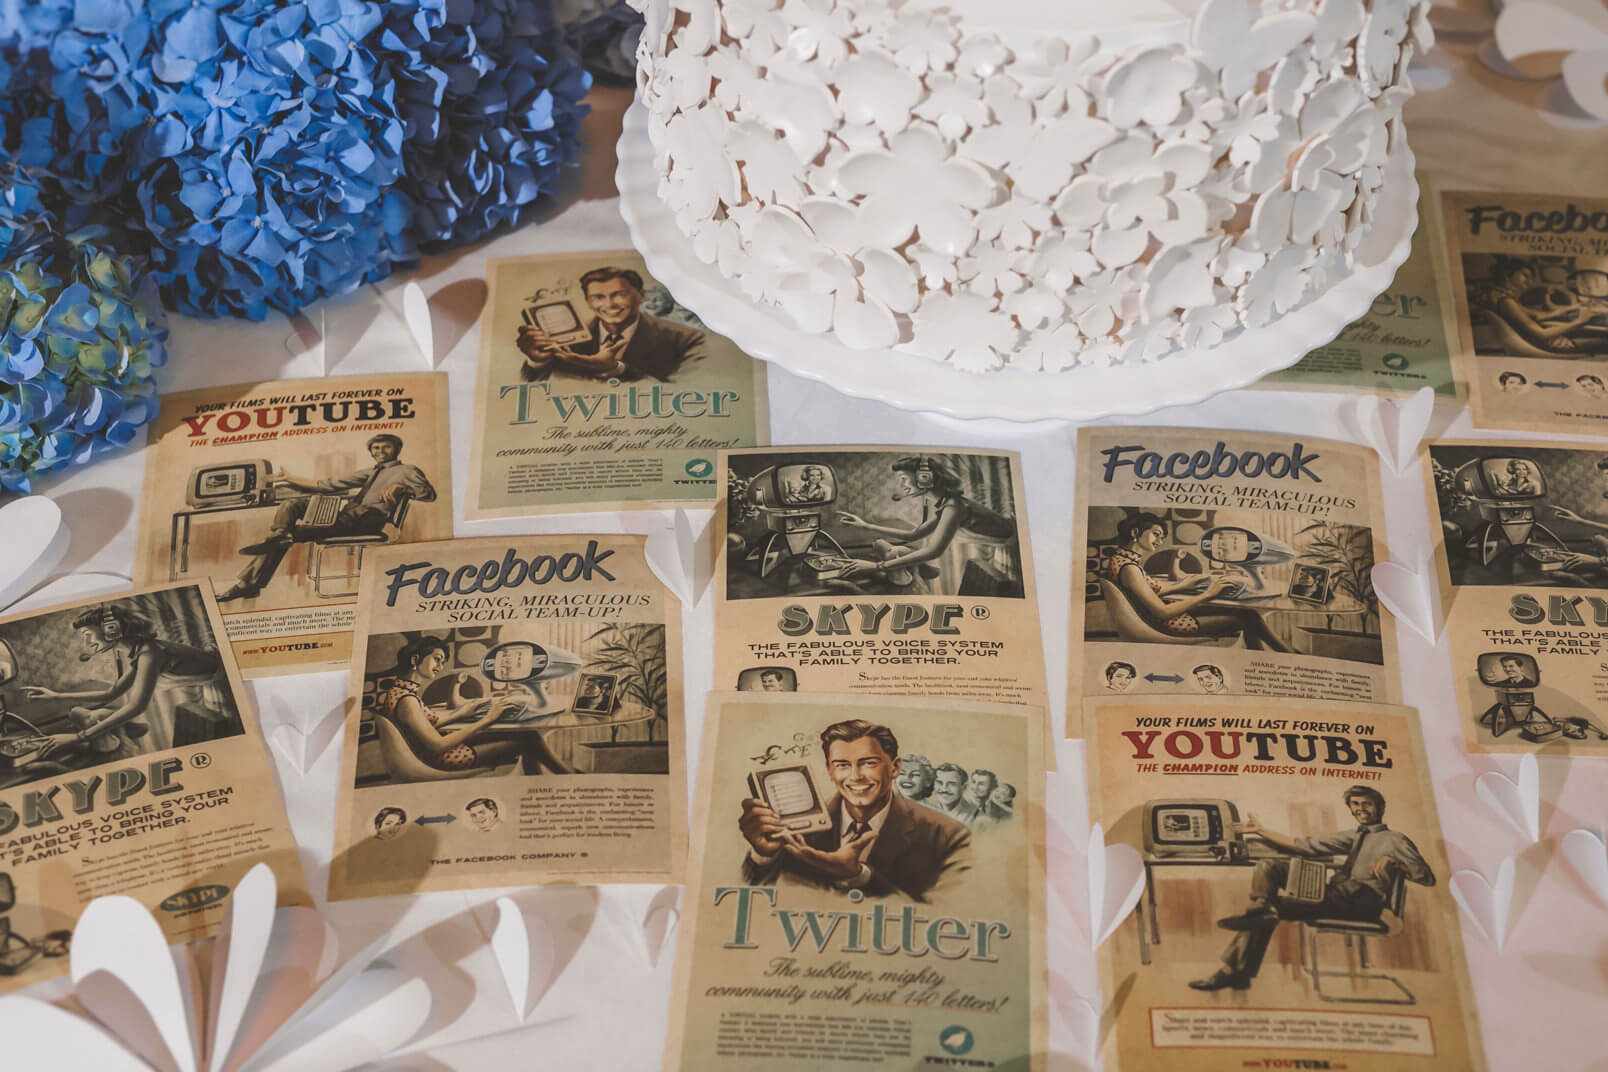 Overview on the vintage social cards used at this 1960s mood wedding. Imaginary retro future ads are from Facebook, Twitter, Skype and YouTube. Where is Instagram?